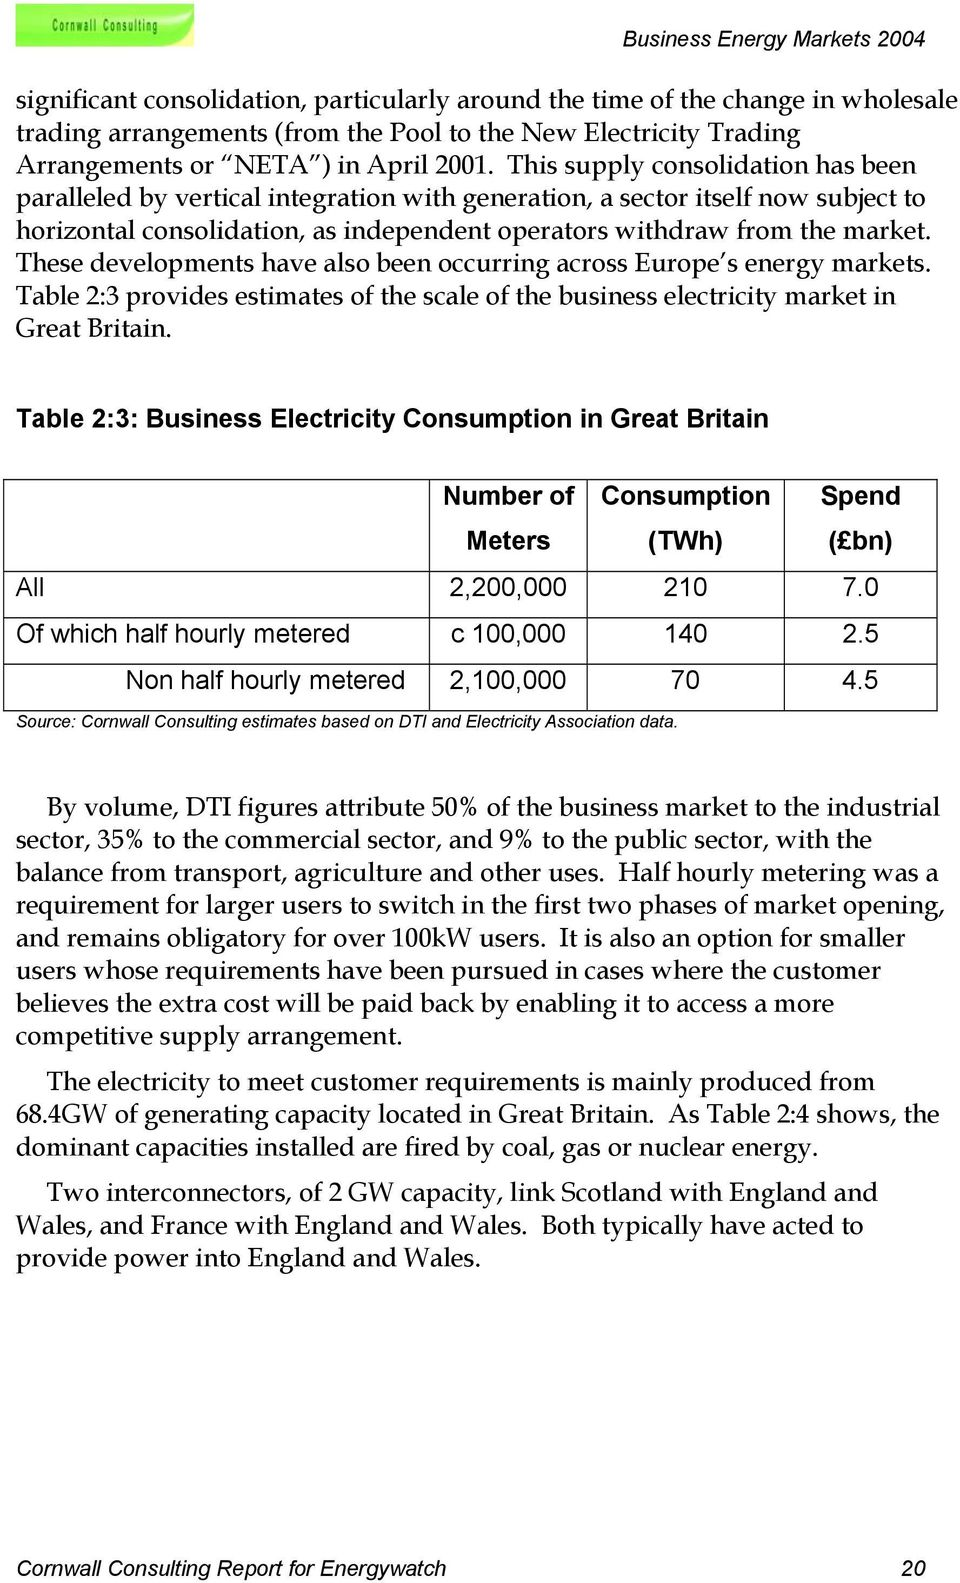 These developments have also been occurring across Europe s energy markets. Table 2:3 provides estimates of the scale of the business electricity market in Great Britain.